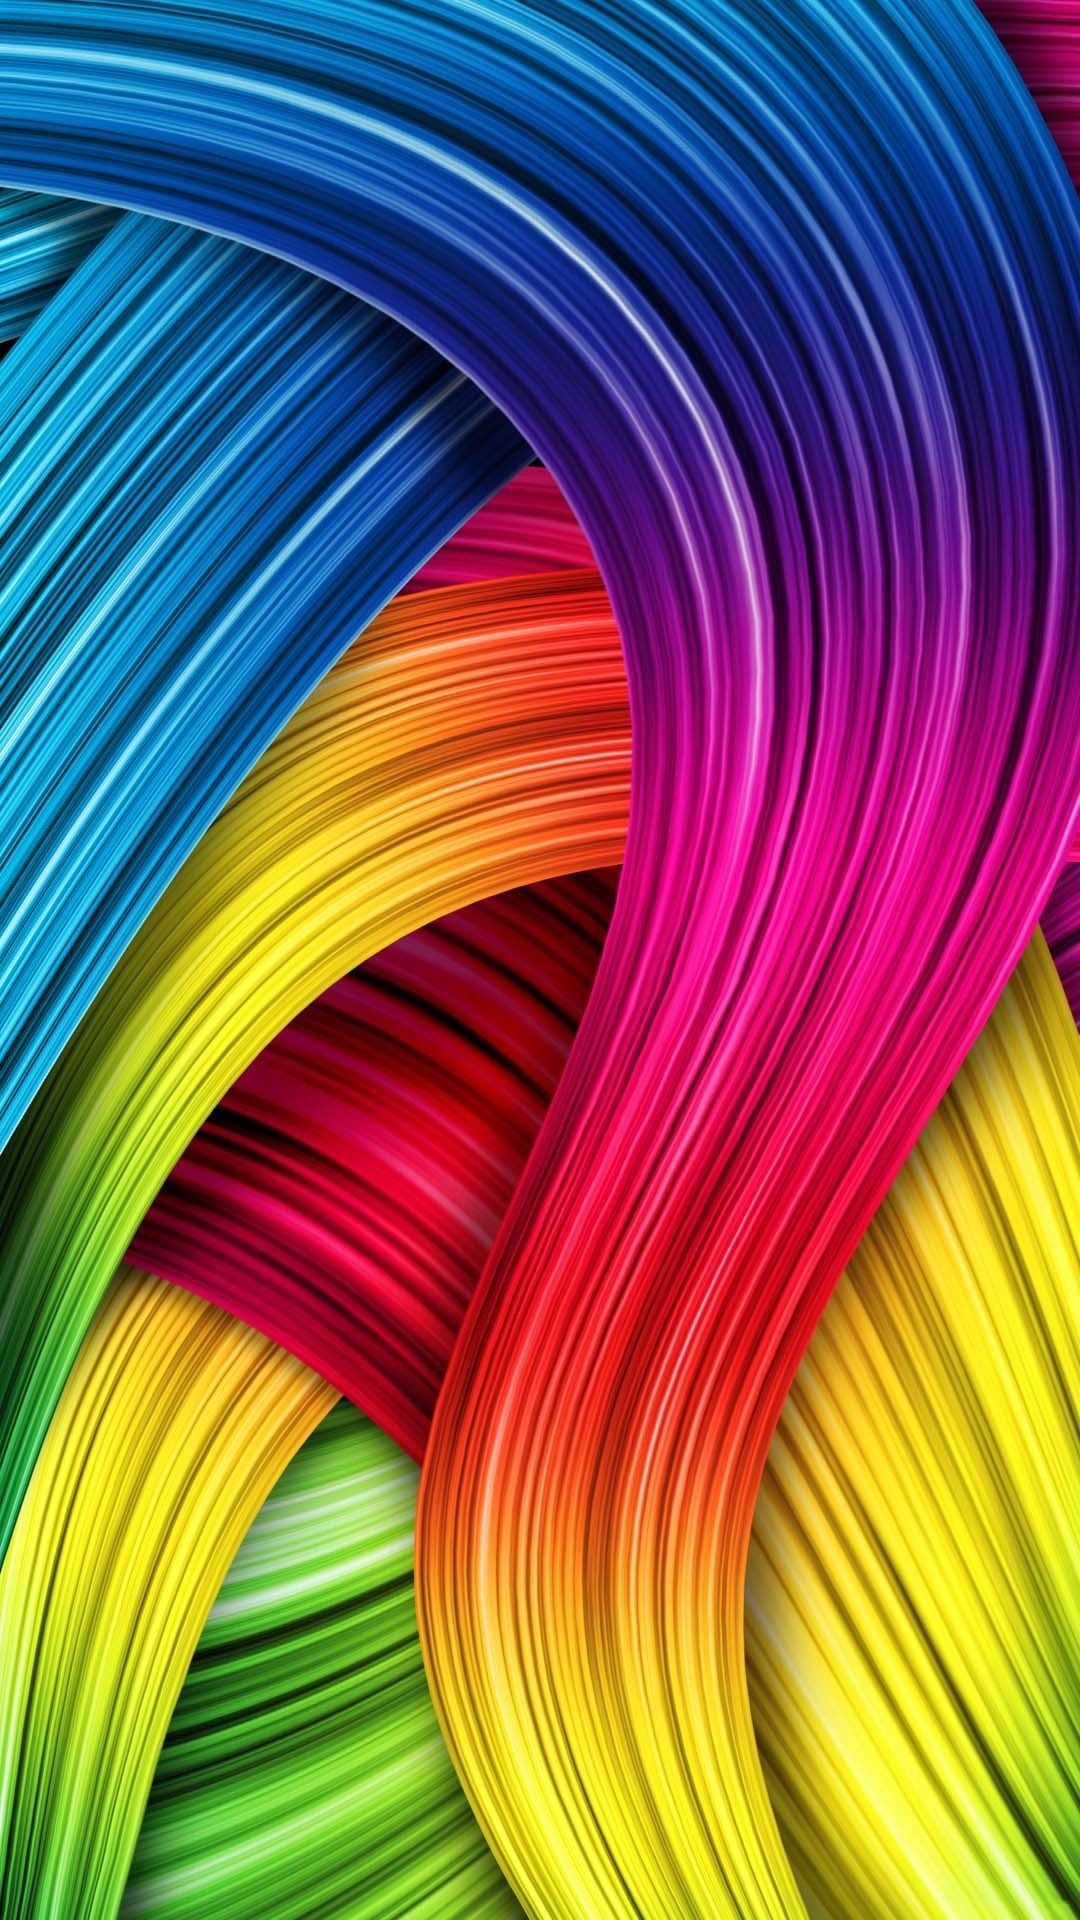 Free Download Rainbow Sony Xperia Z1 Wallpapers For Mobile